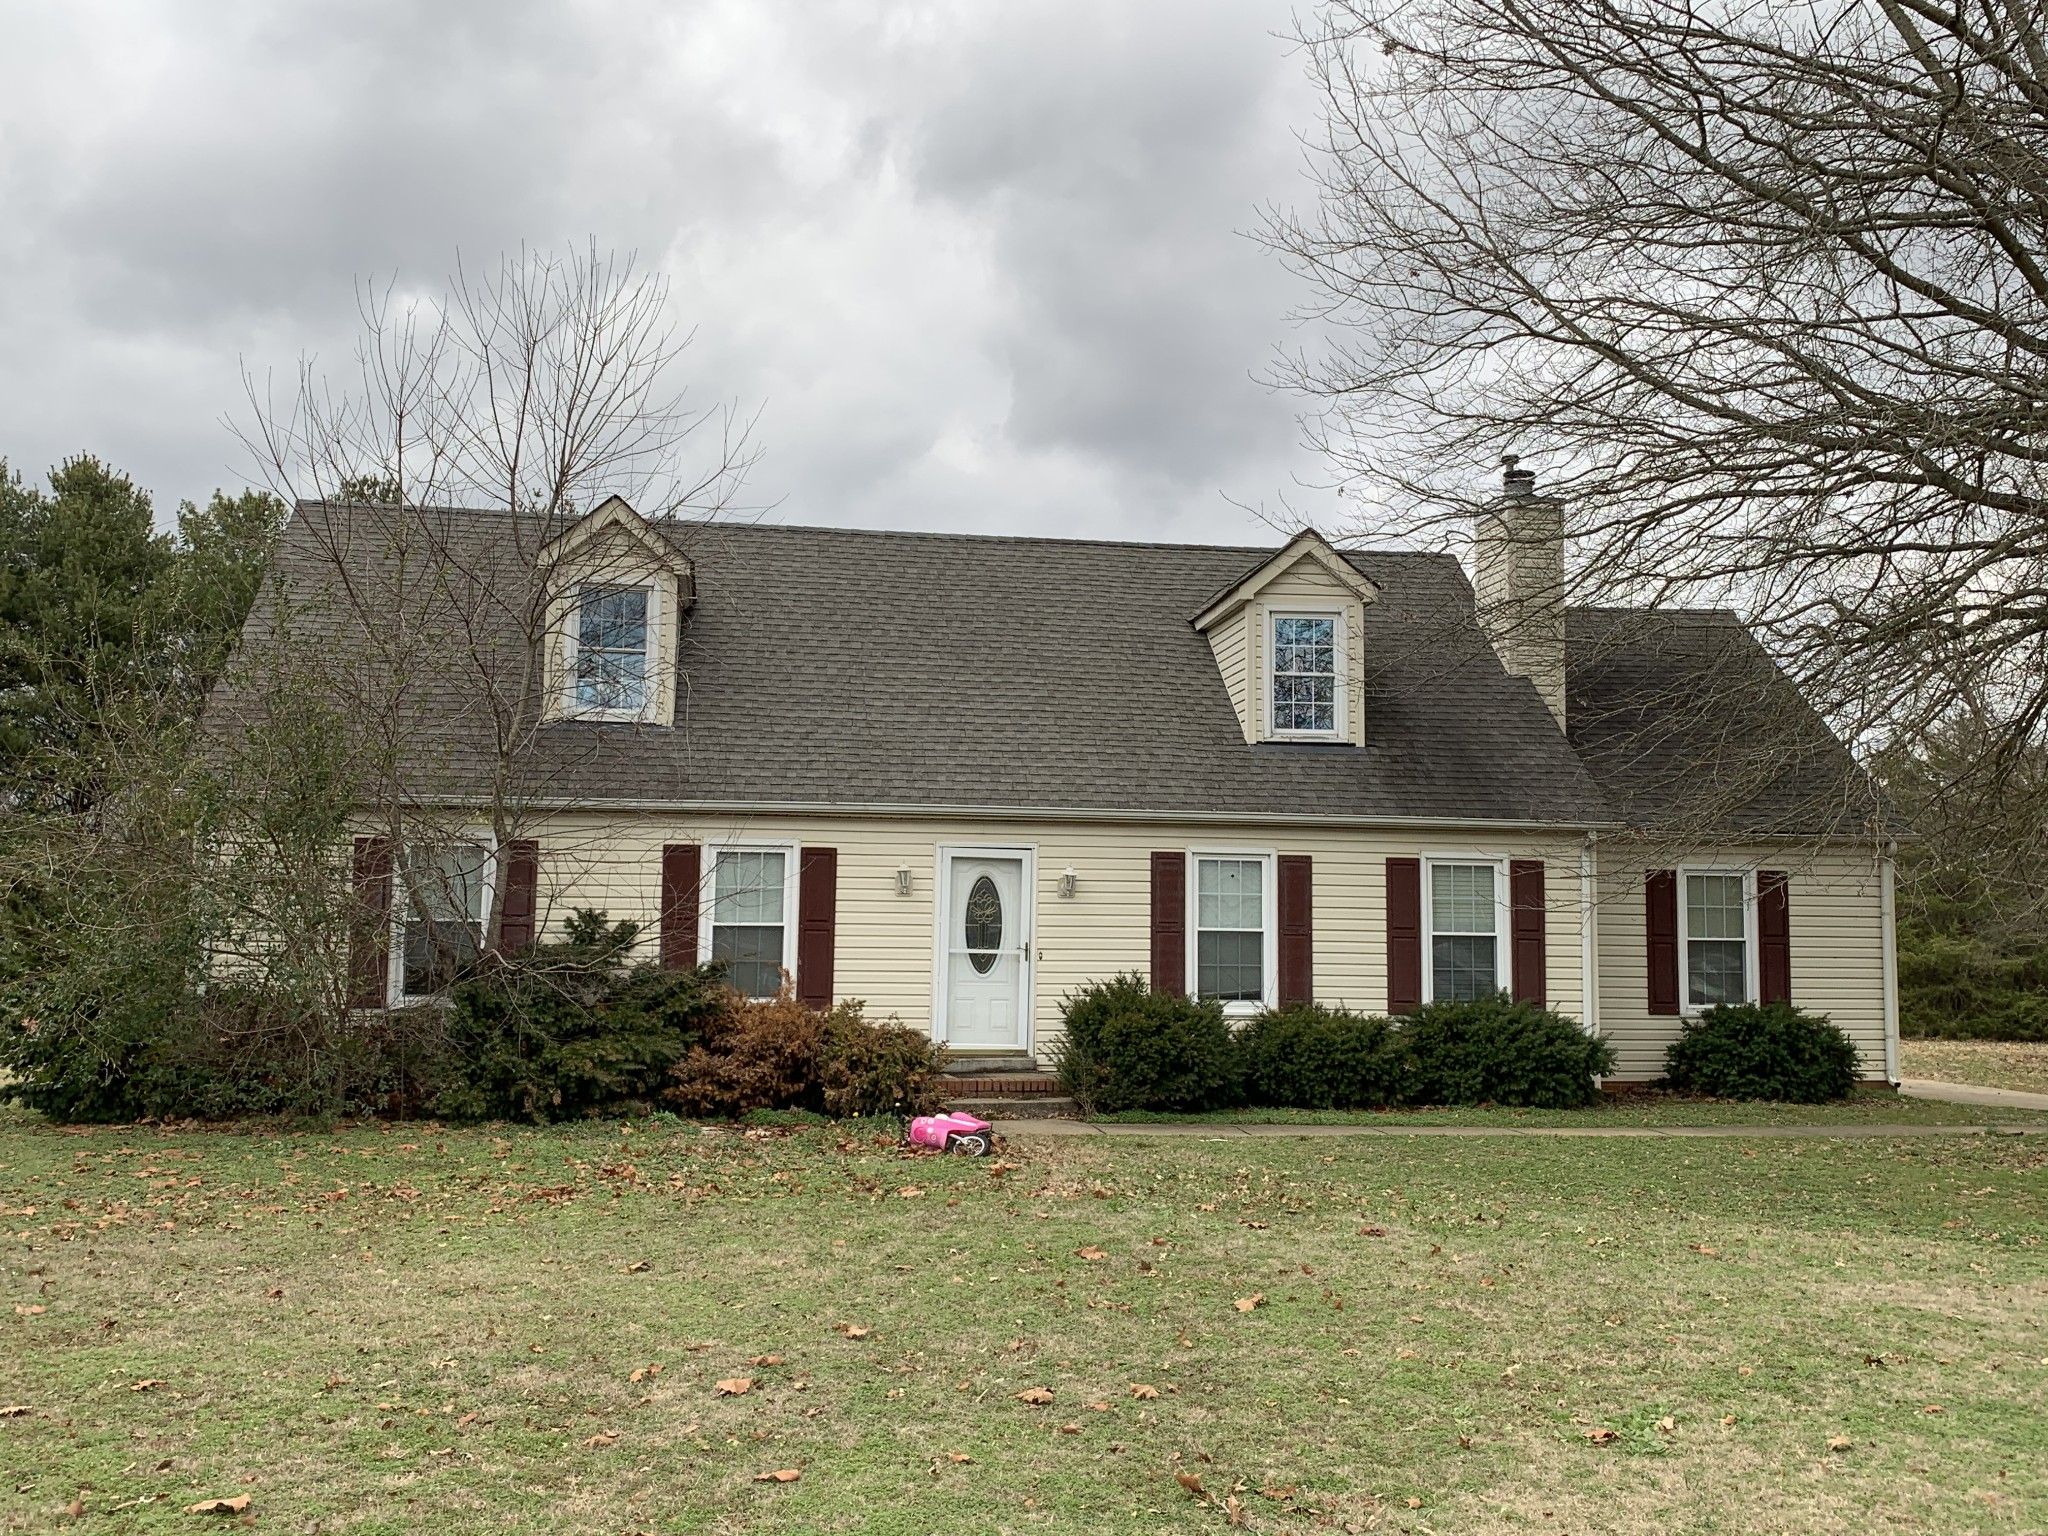 104 Wintergreen Ct, Smyrna, TN 37167 - Smyrna, TN real estate listing